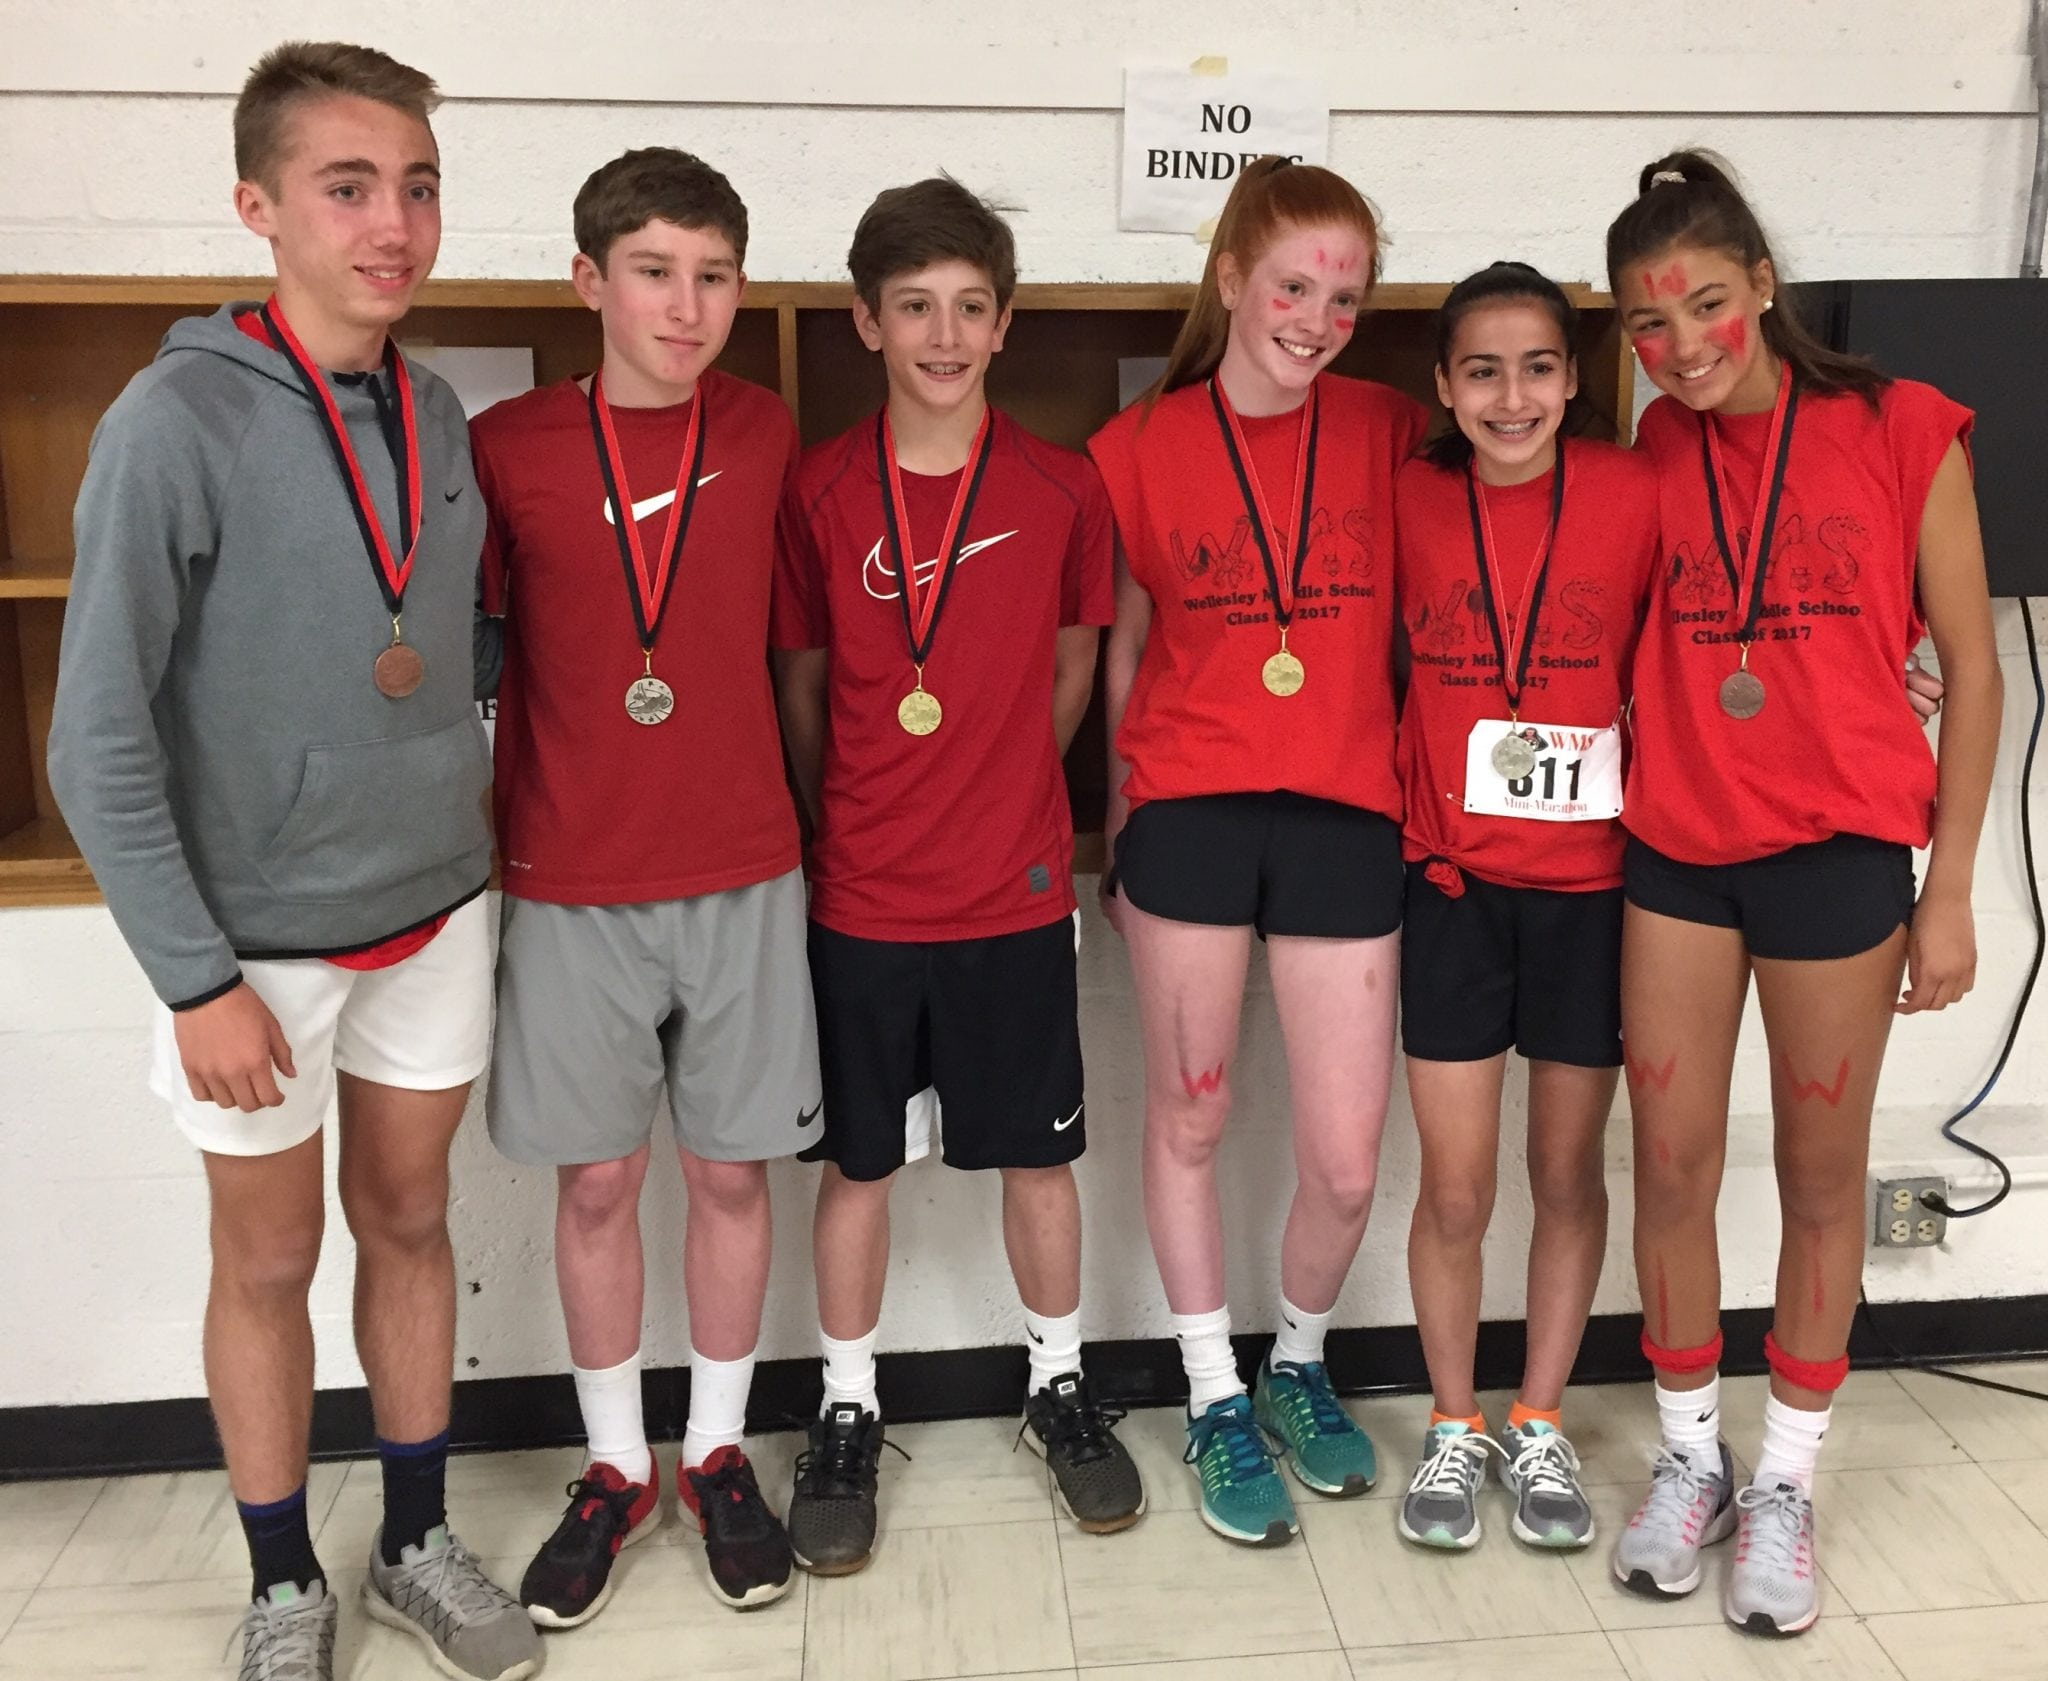 Wellesley Middle School Mini Marathon